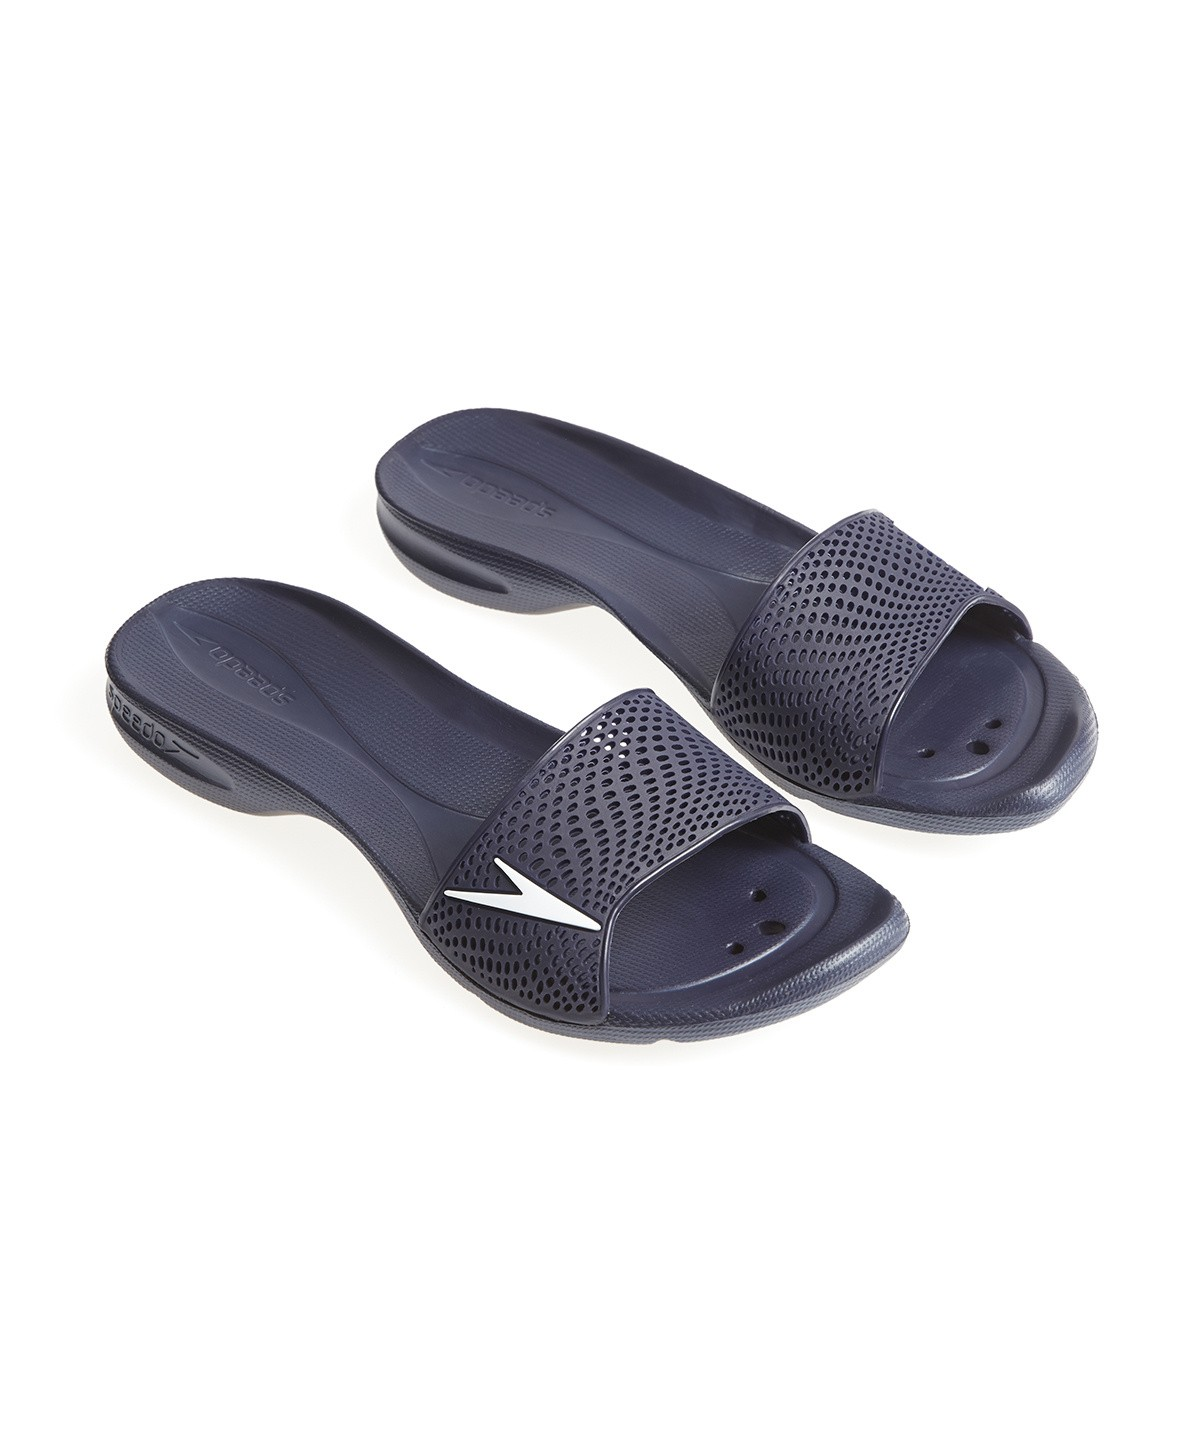 Speedo damesslipper Atami II Max navy/white